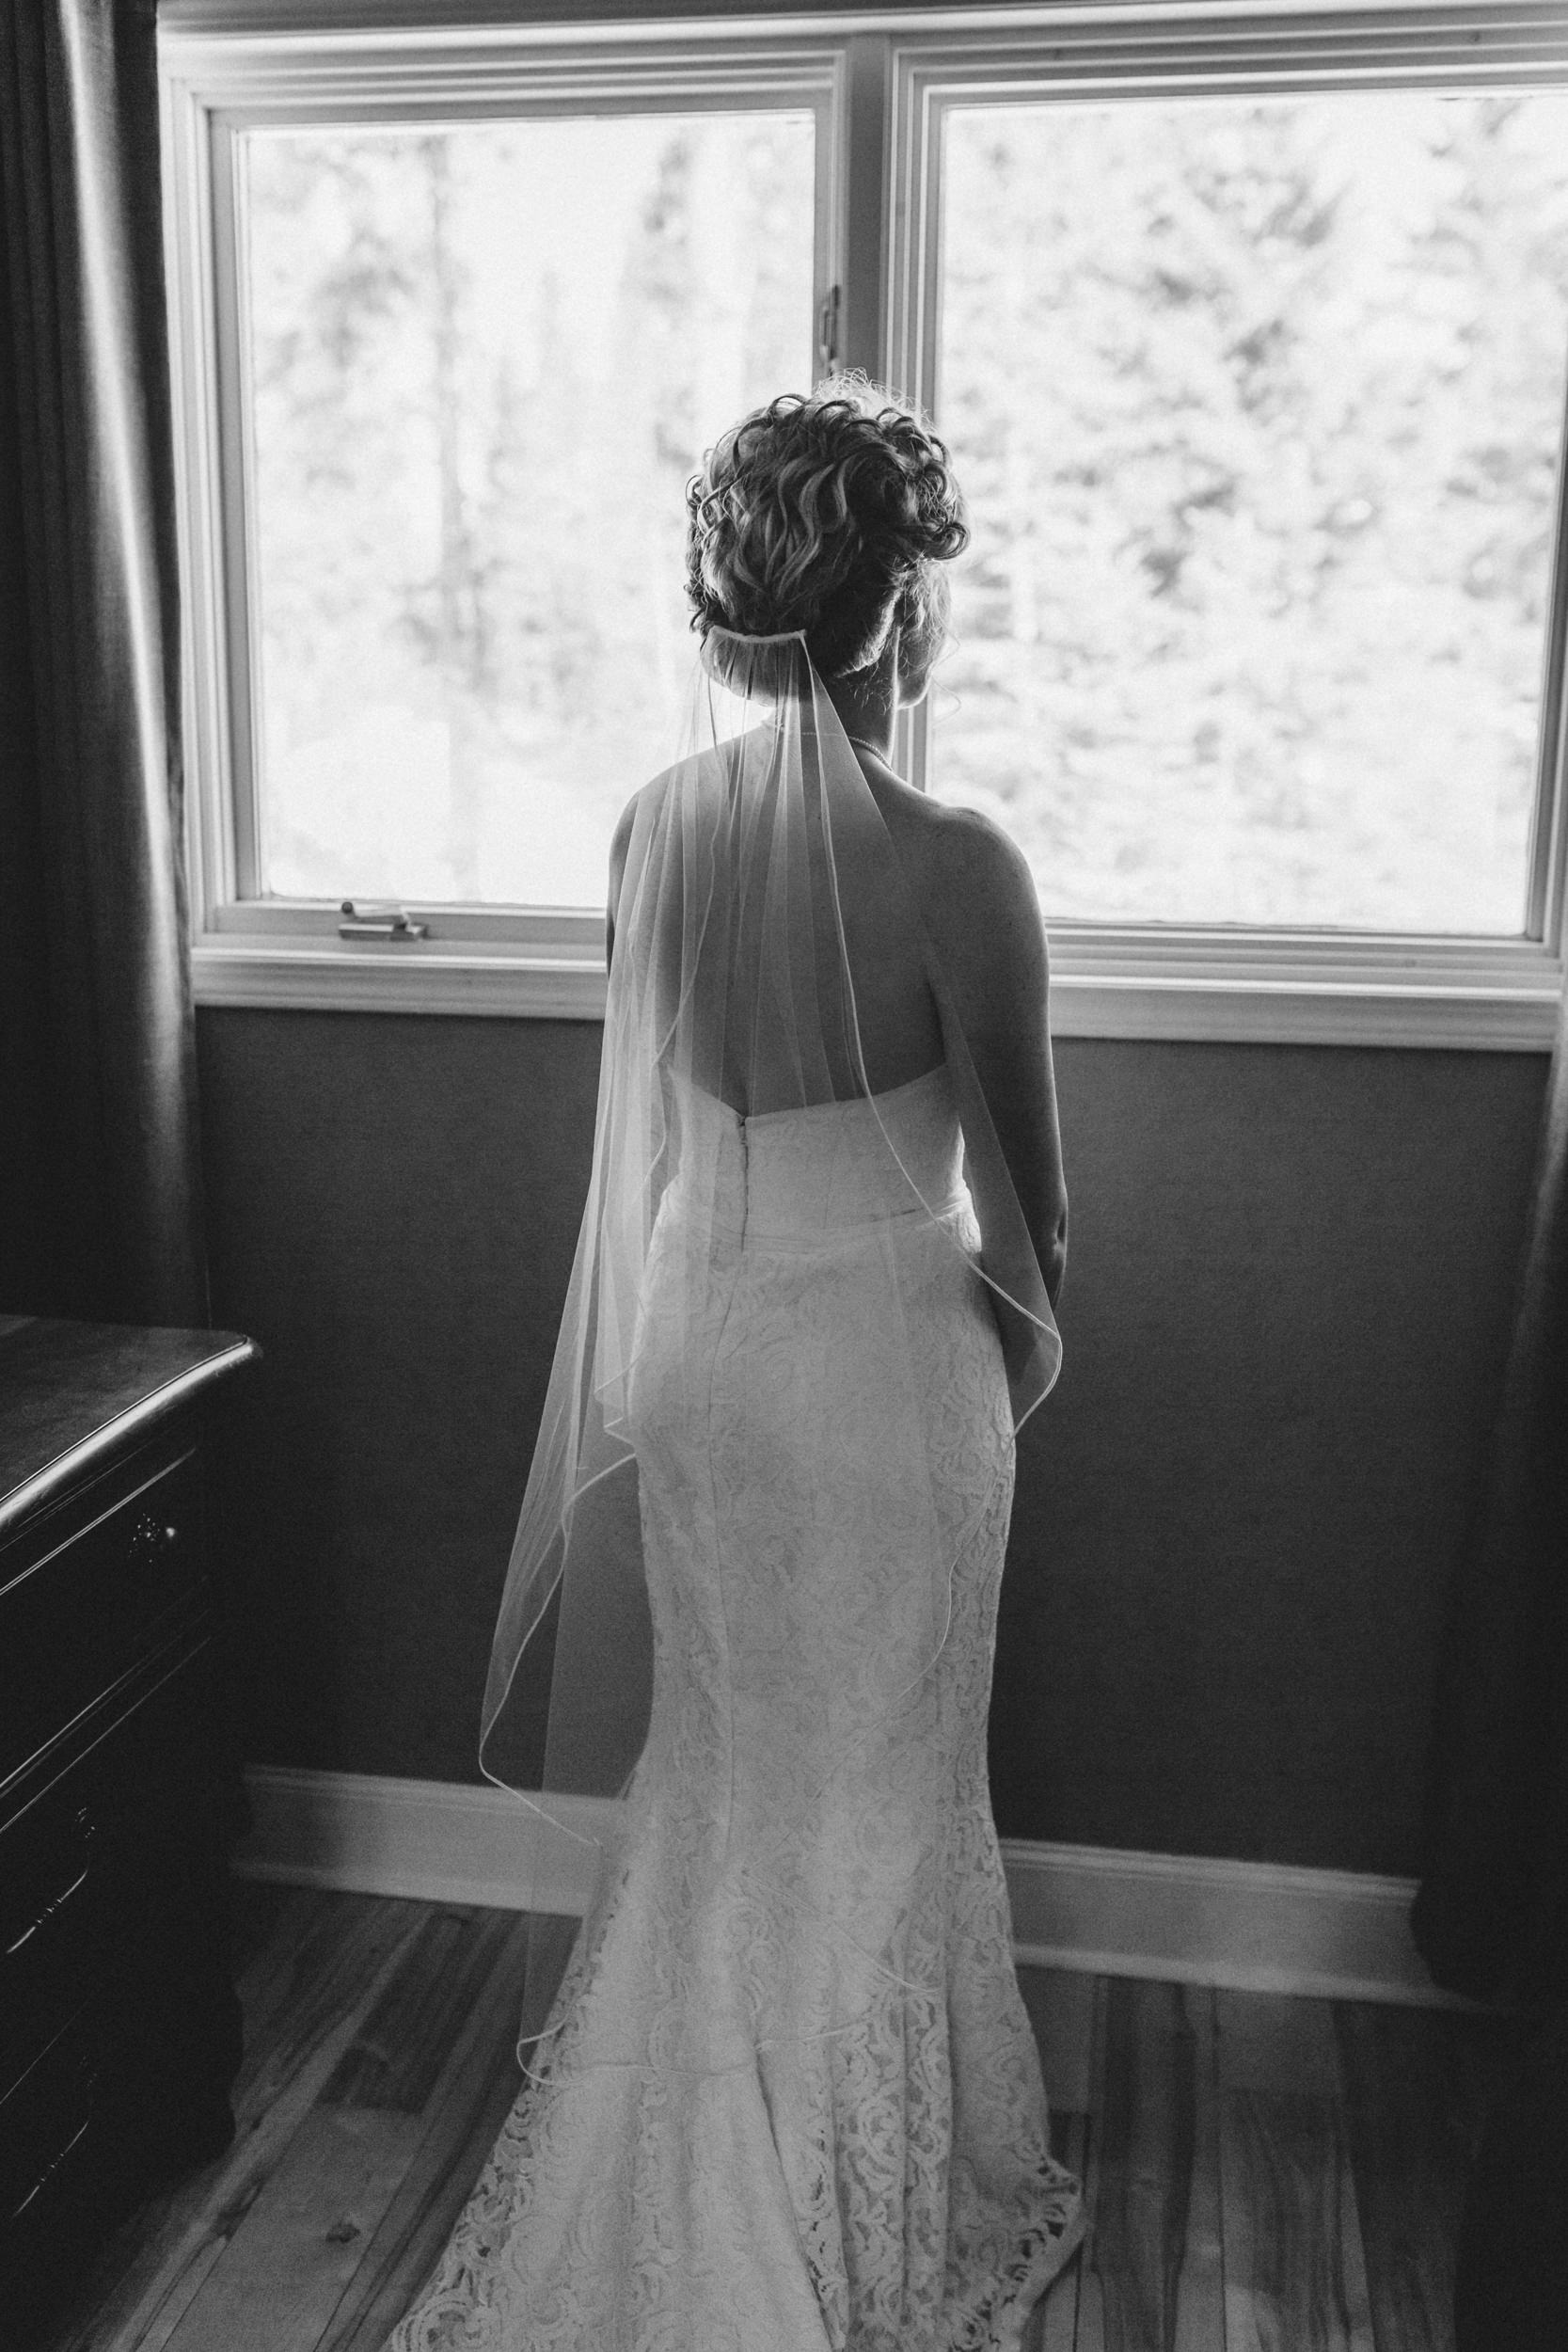 Portrait of bride looking out the window